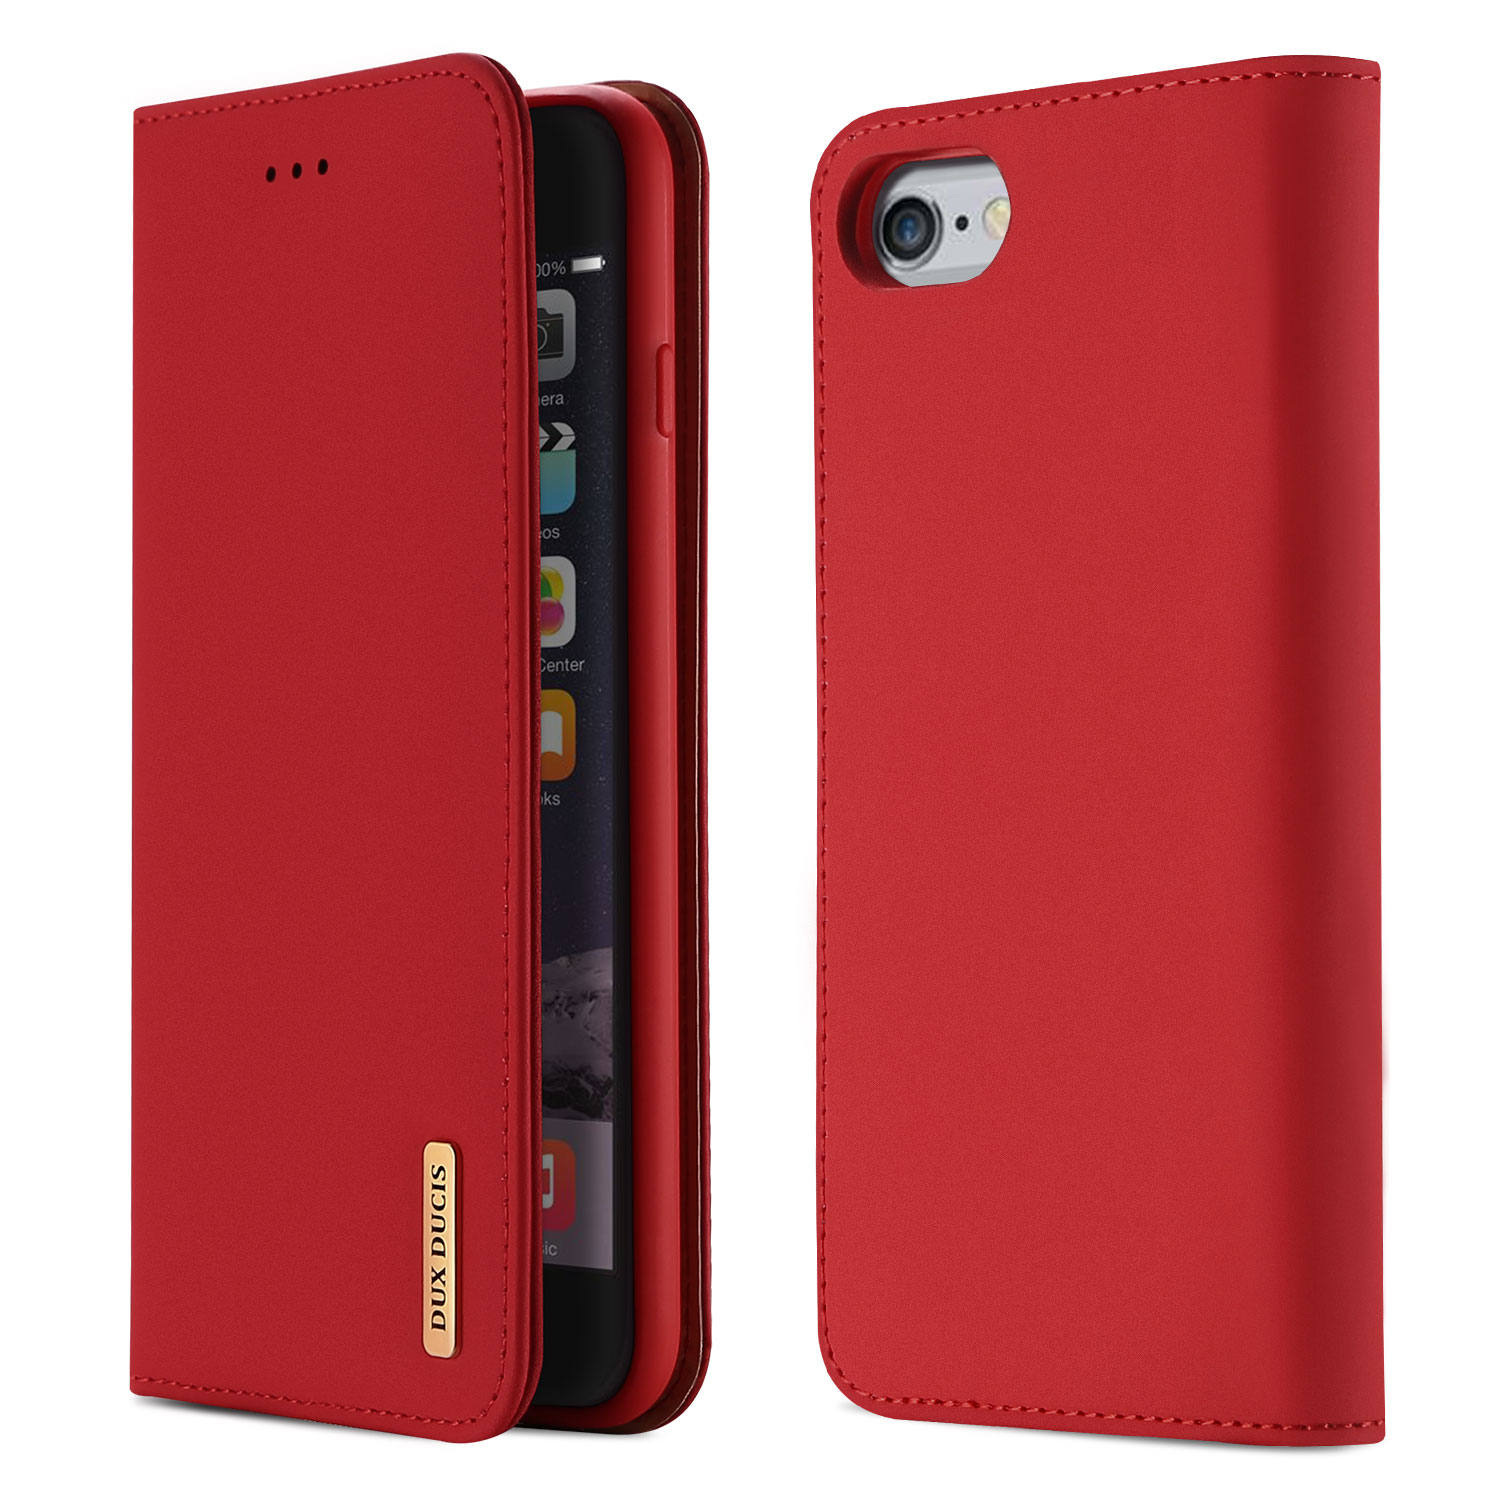 DUX DUCIS For iPhone 6/6s Luxury Genuine Leather Magnetic Flip Cover Full Protective Case with Bracket Card Slot red